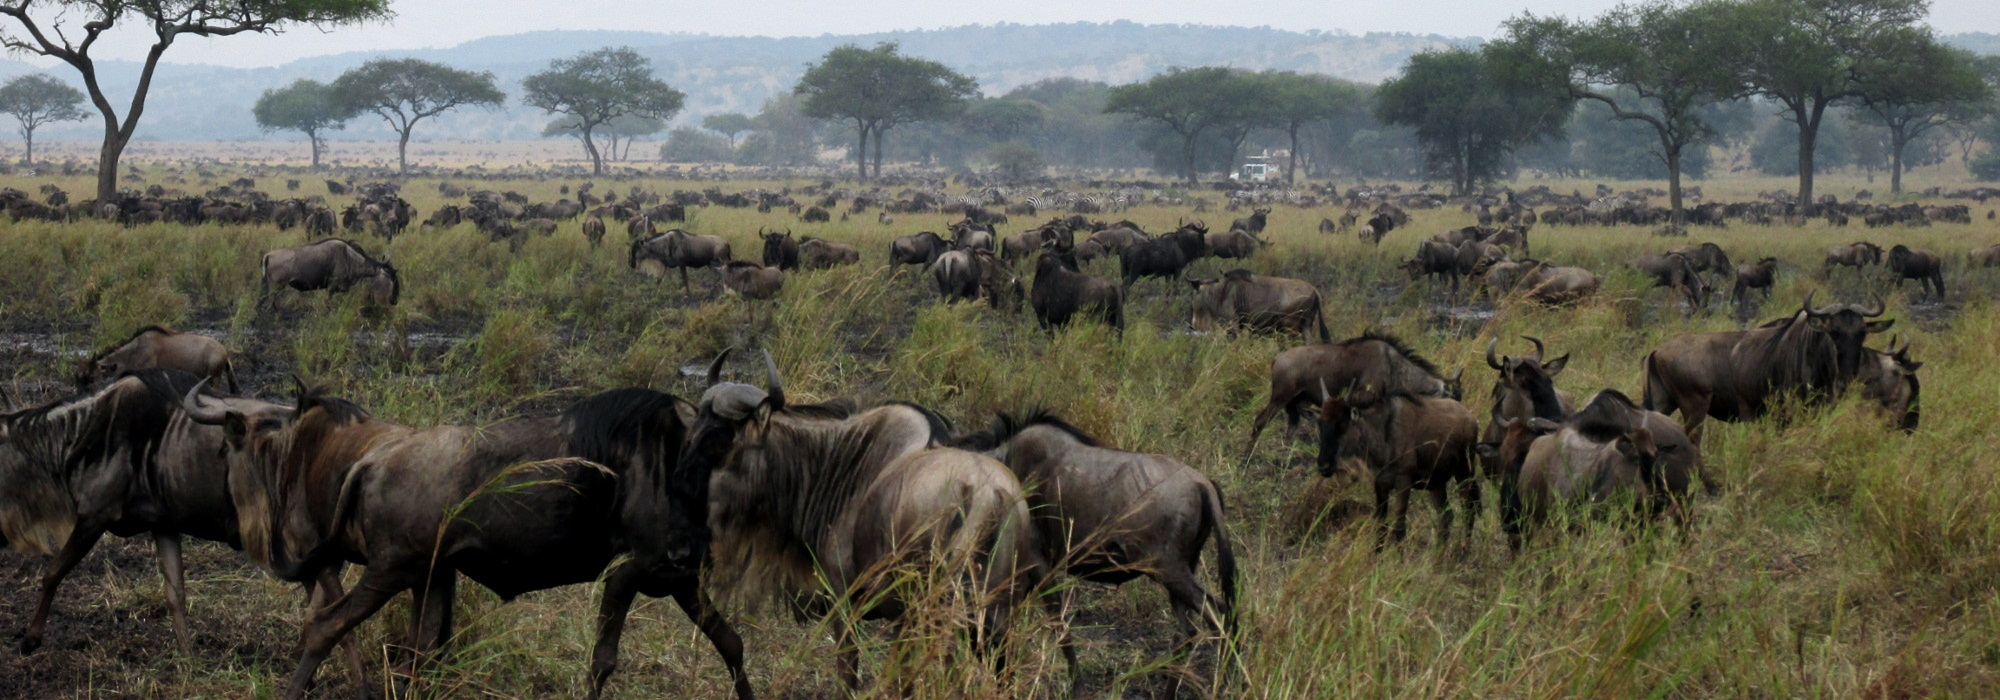 gnu migration serengeti